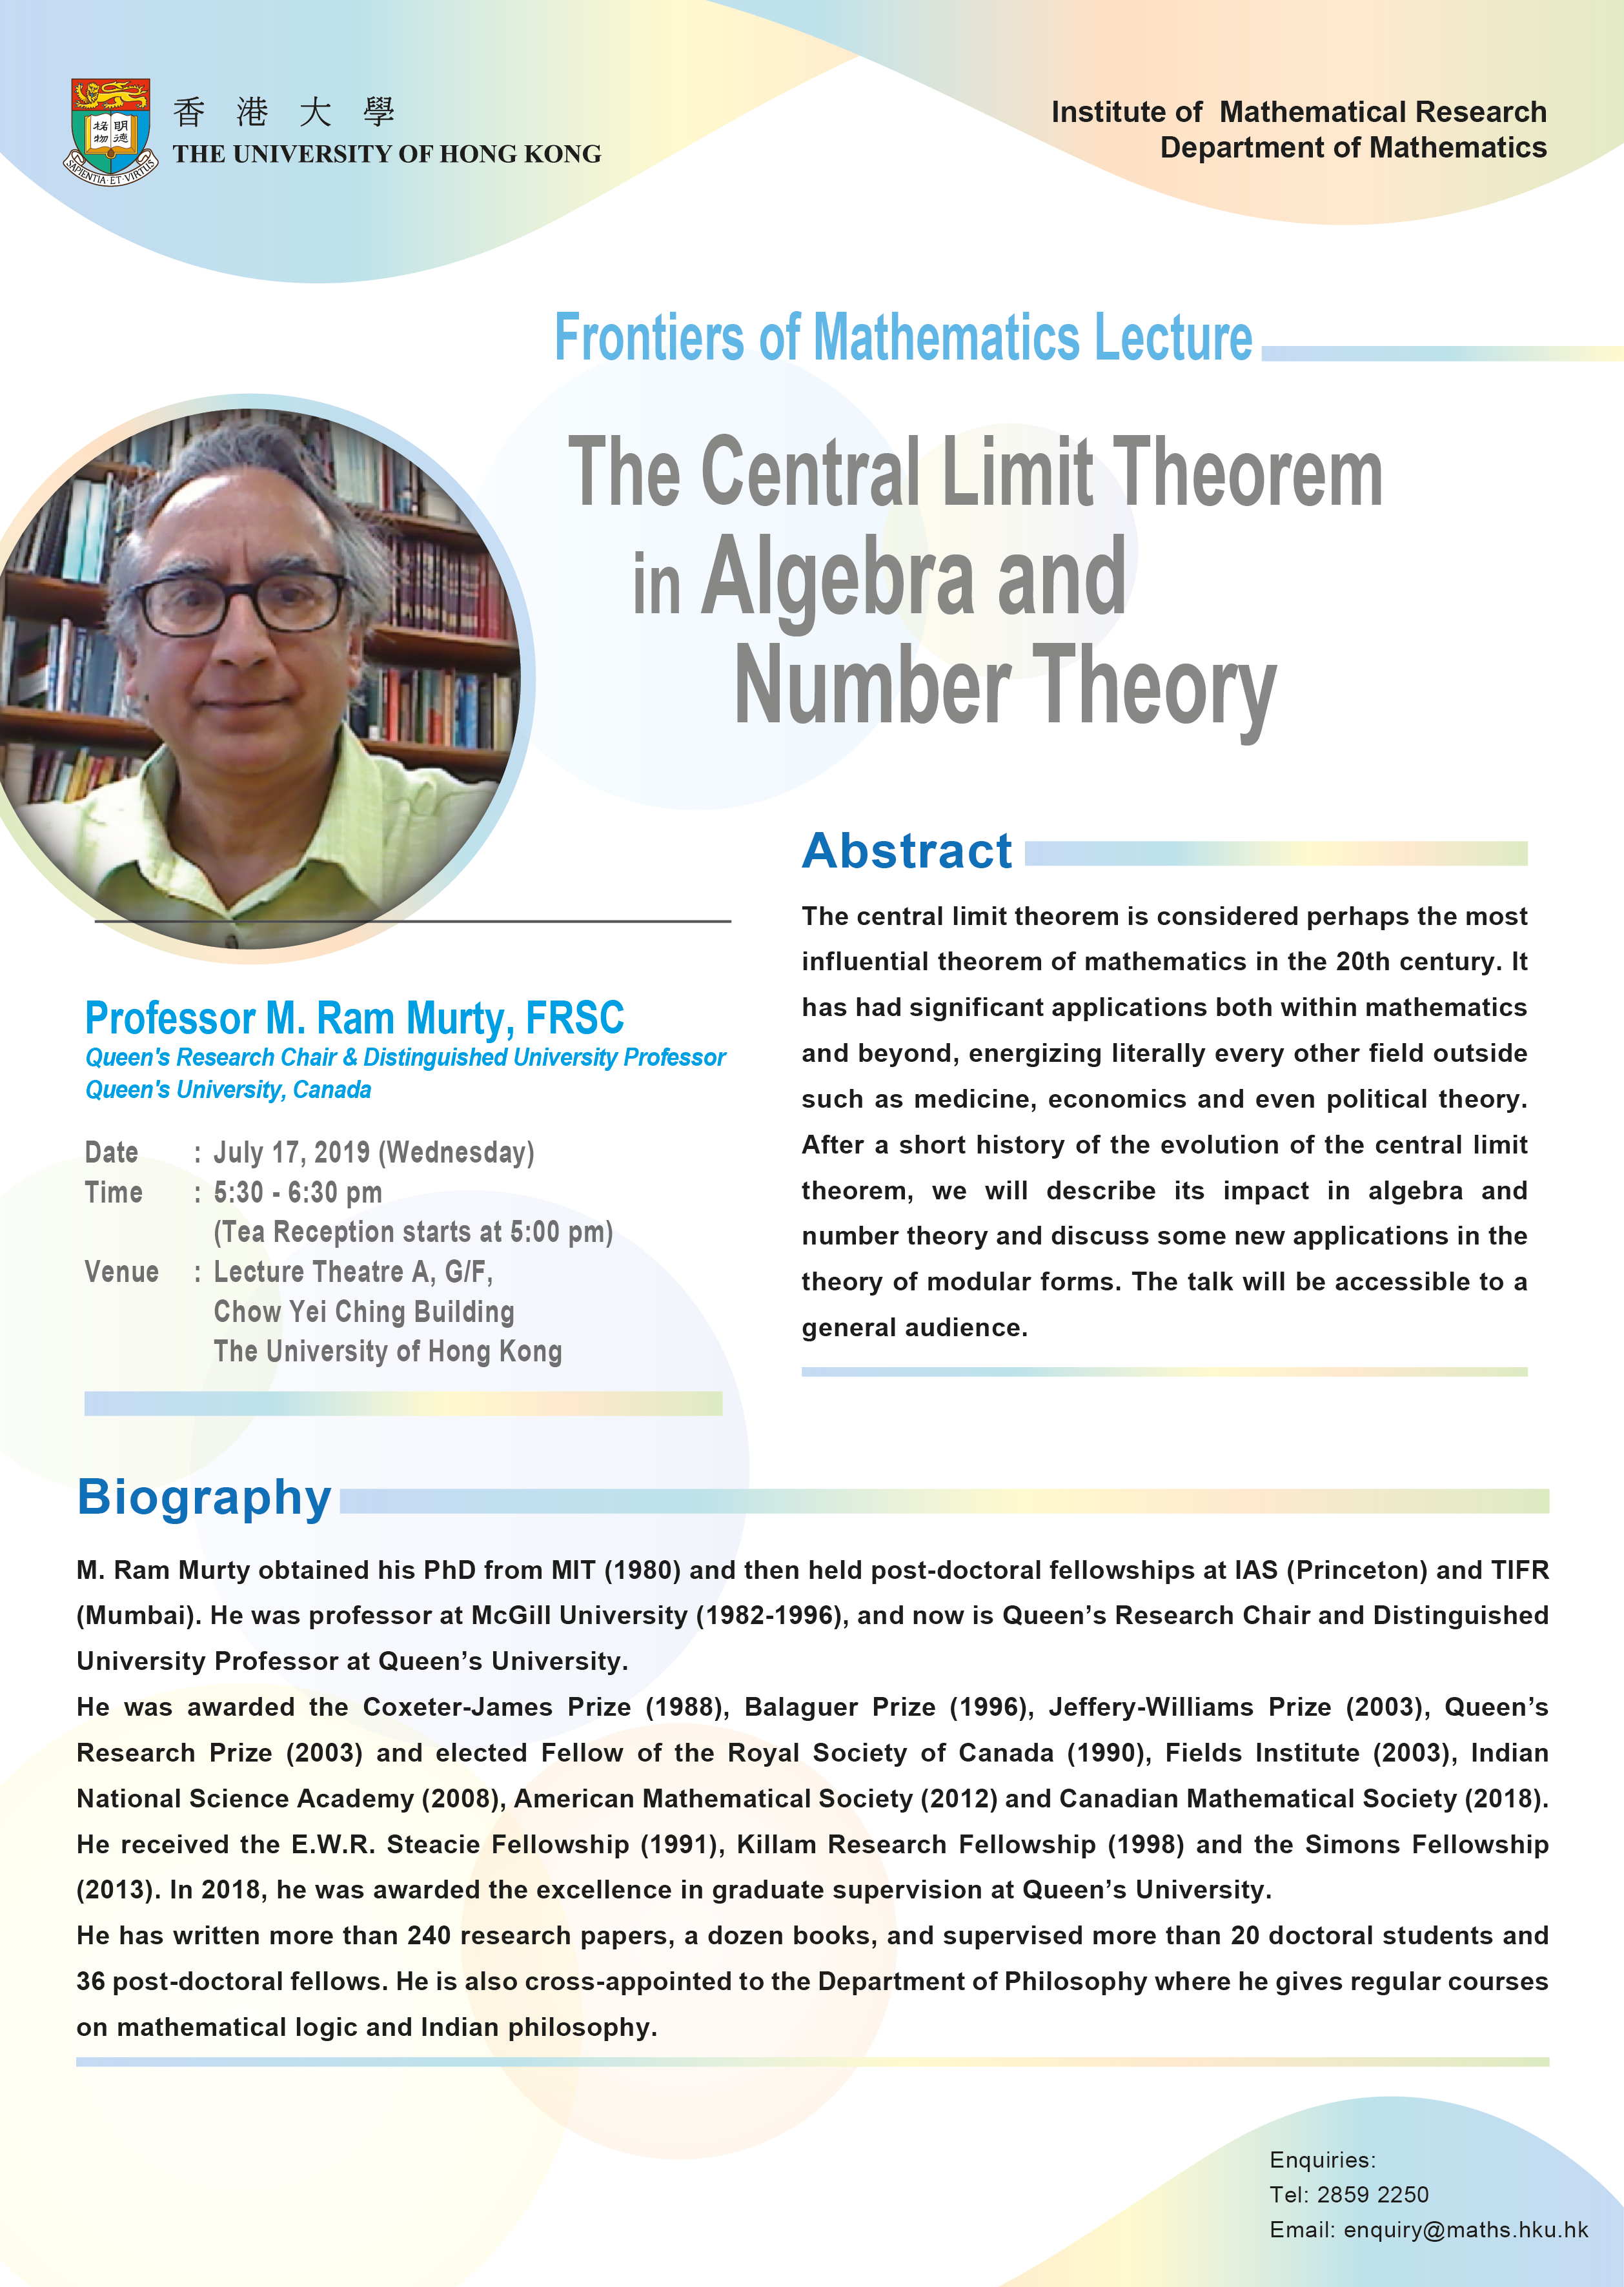 Frontiers of Mathematics Lectures